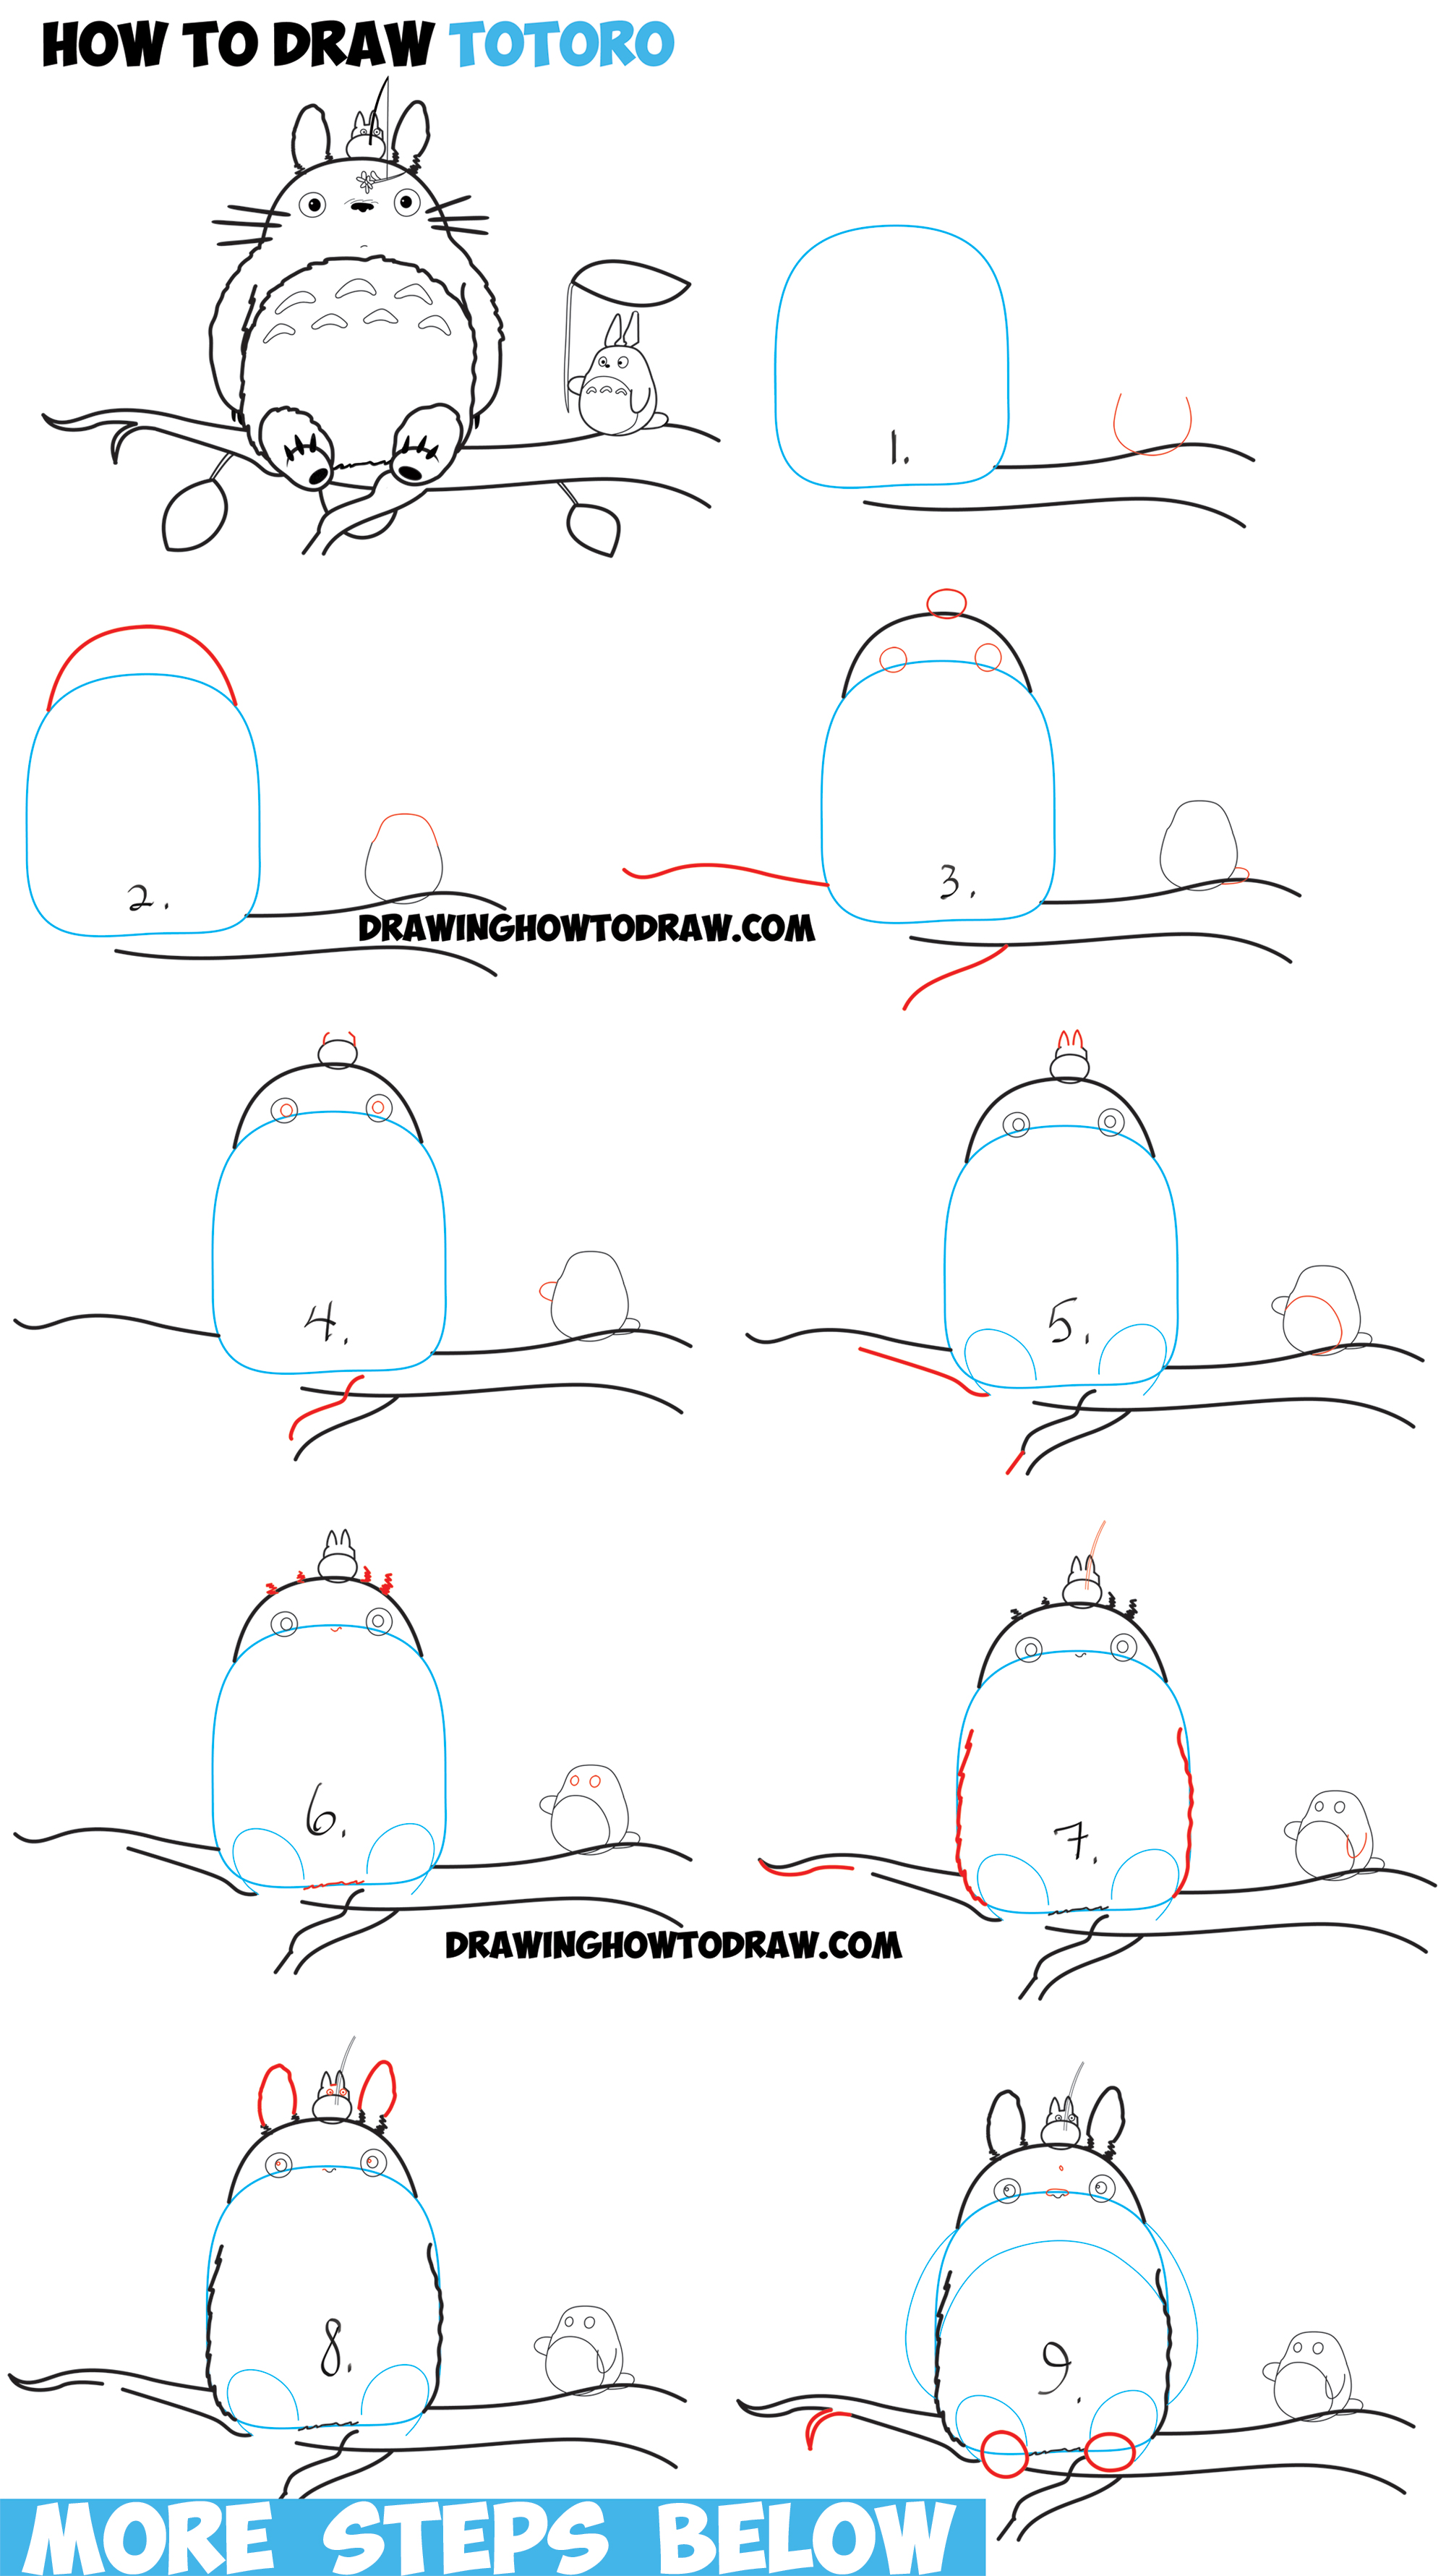 How to draw totoro from my neighbor totoro easy step by for Free online drawing lessons step by step